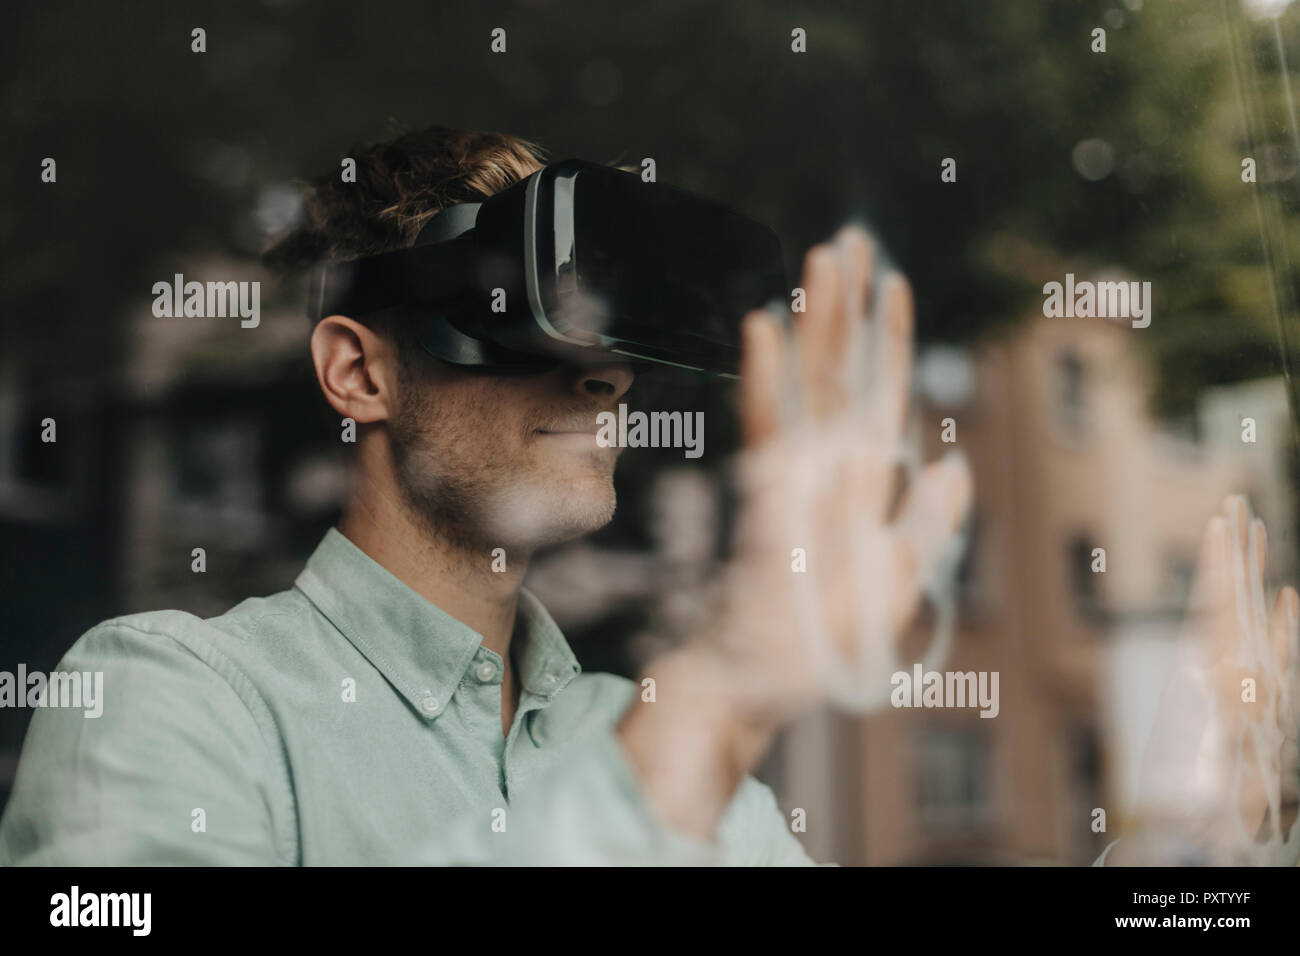 Young man standing at the window, using VR glasses - Stock Image